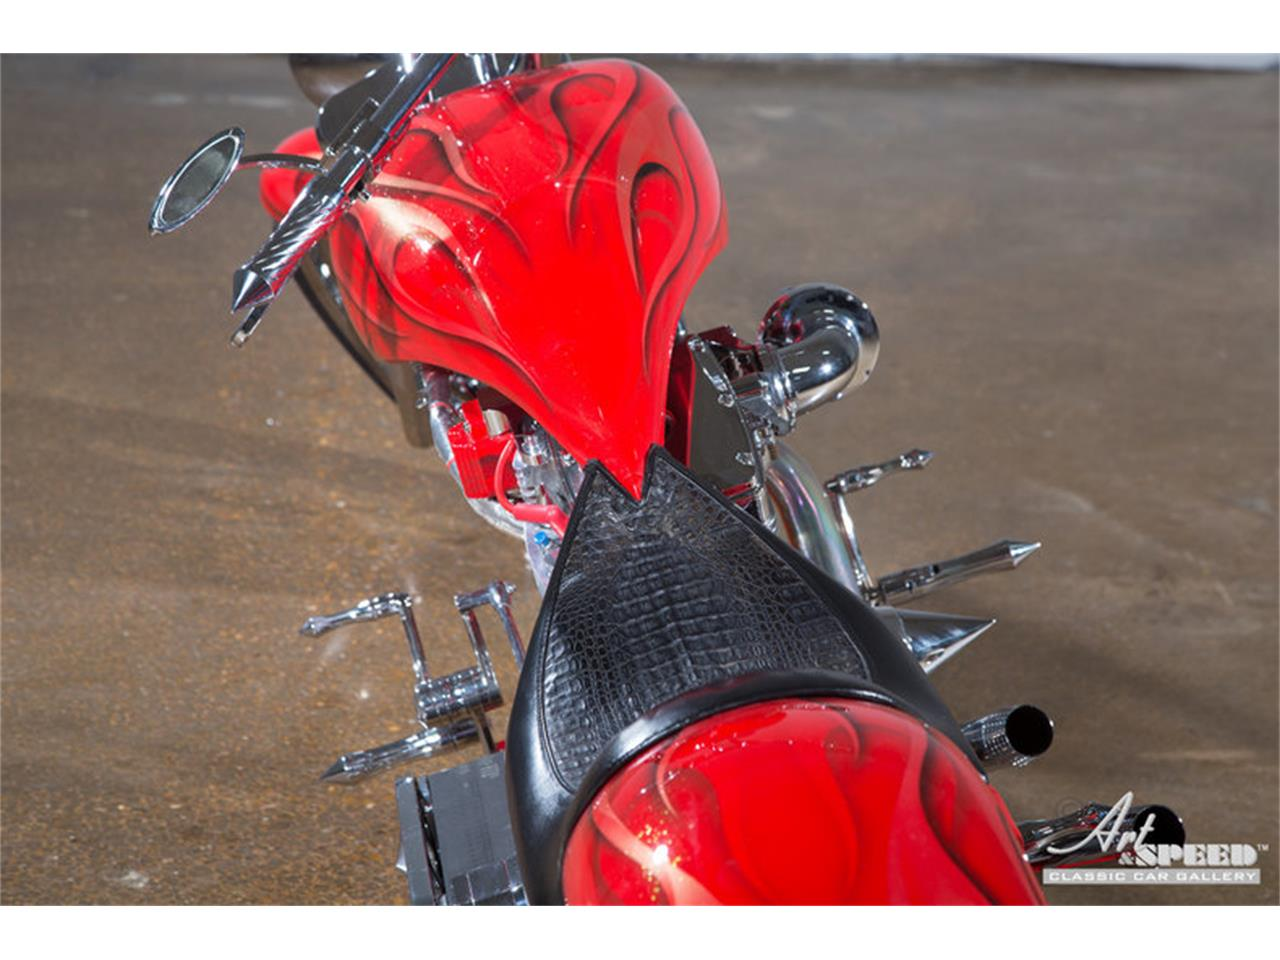 Large Picture of 2004 Italdesign Pro MC Custom Chopper - $19,900.00 Offered by Art & Speed - DUSV